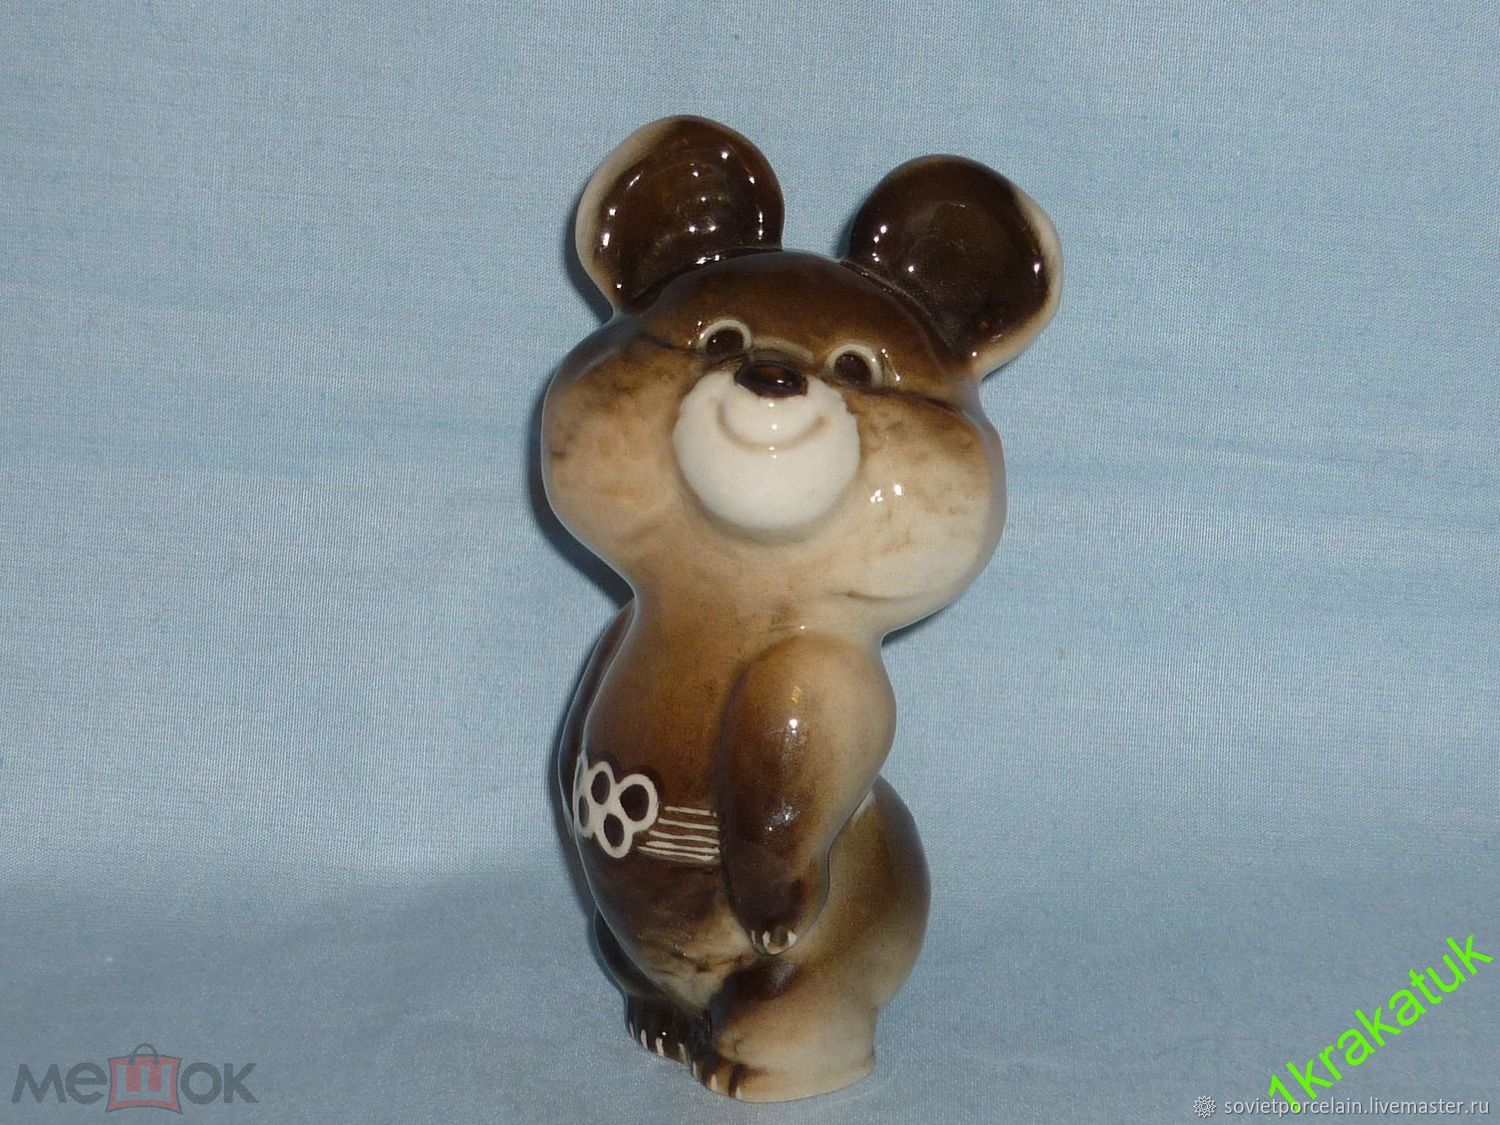 The OLYMPIC BEAR, the BEAR factory 11,5 cm. OLYMPIC GAMES MOSCOW 1980,, Vintage interior, St. Petersburg,  Фото №1